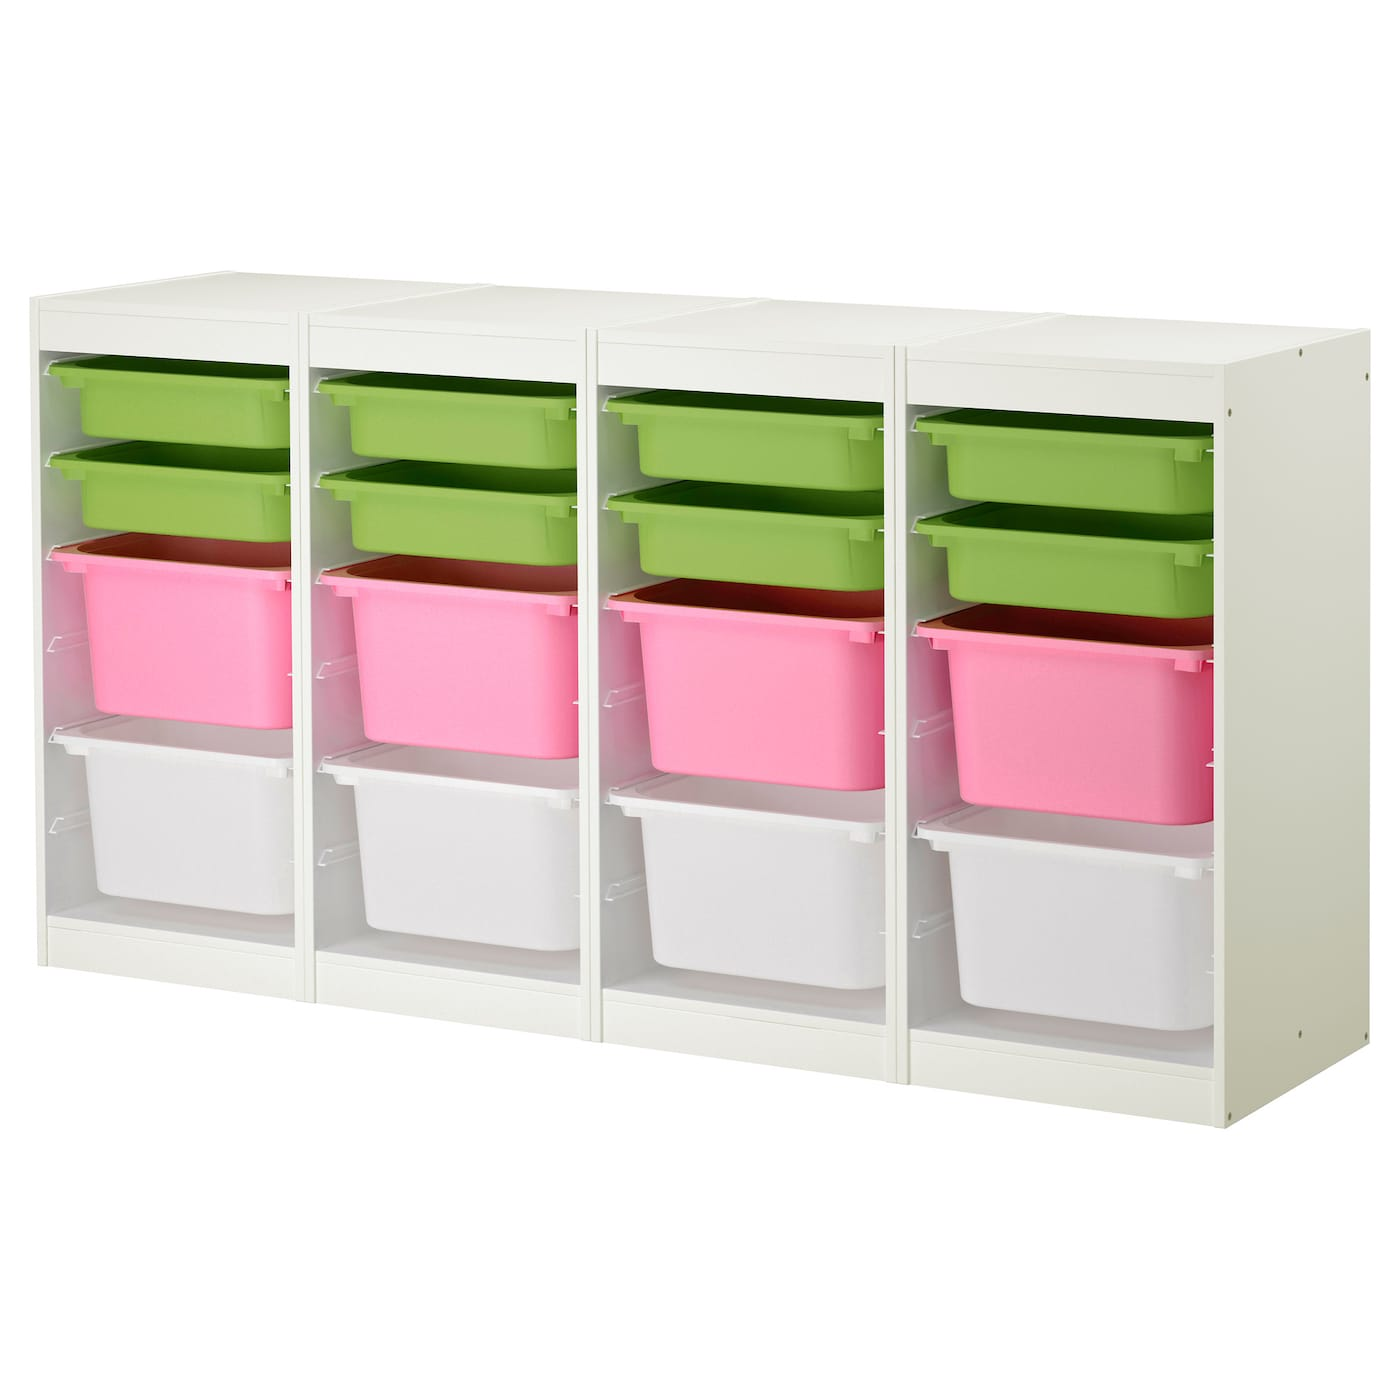 Baby children products ikea for Meuble 5 cases ikea